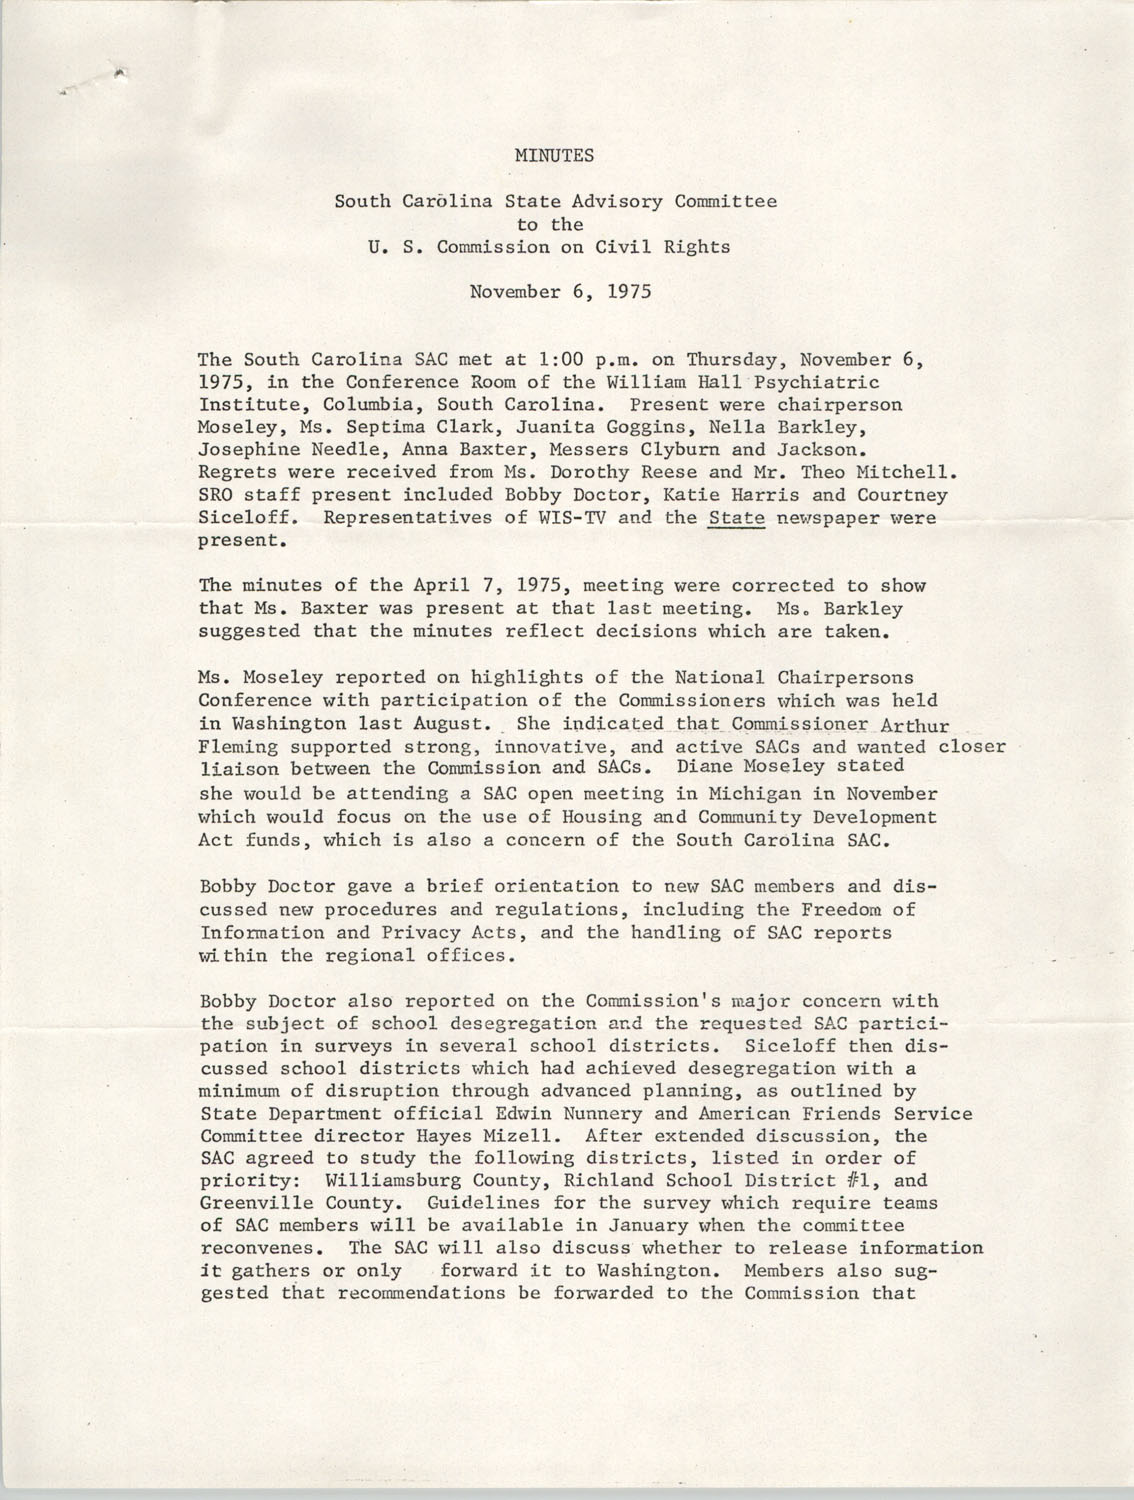 Minutes, South Carolina State Advisory to the U.S. Commission on Civil Rights, November 6, 1975